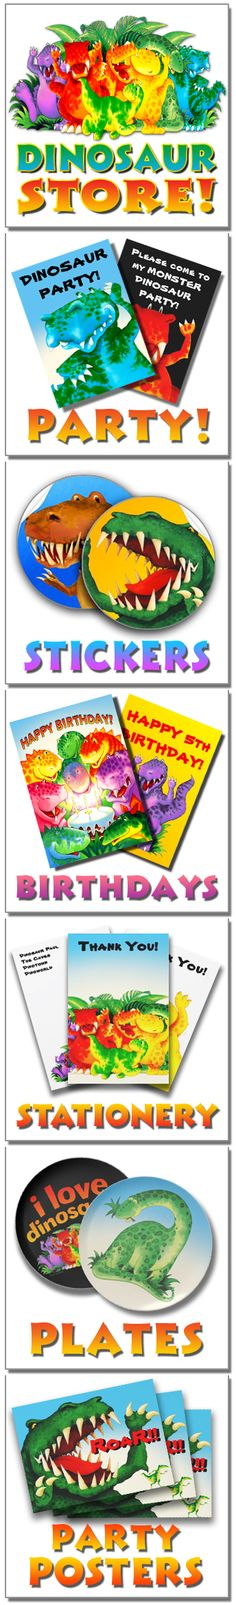 Paul Stickland Dinosaur Themed Party Ideas from DinosaurStore. Going to need this for David's 3rd birthday.